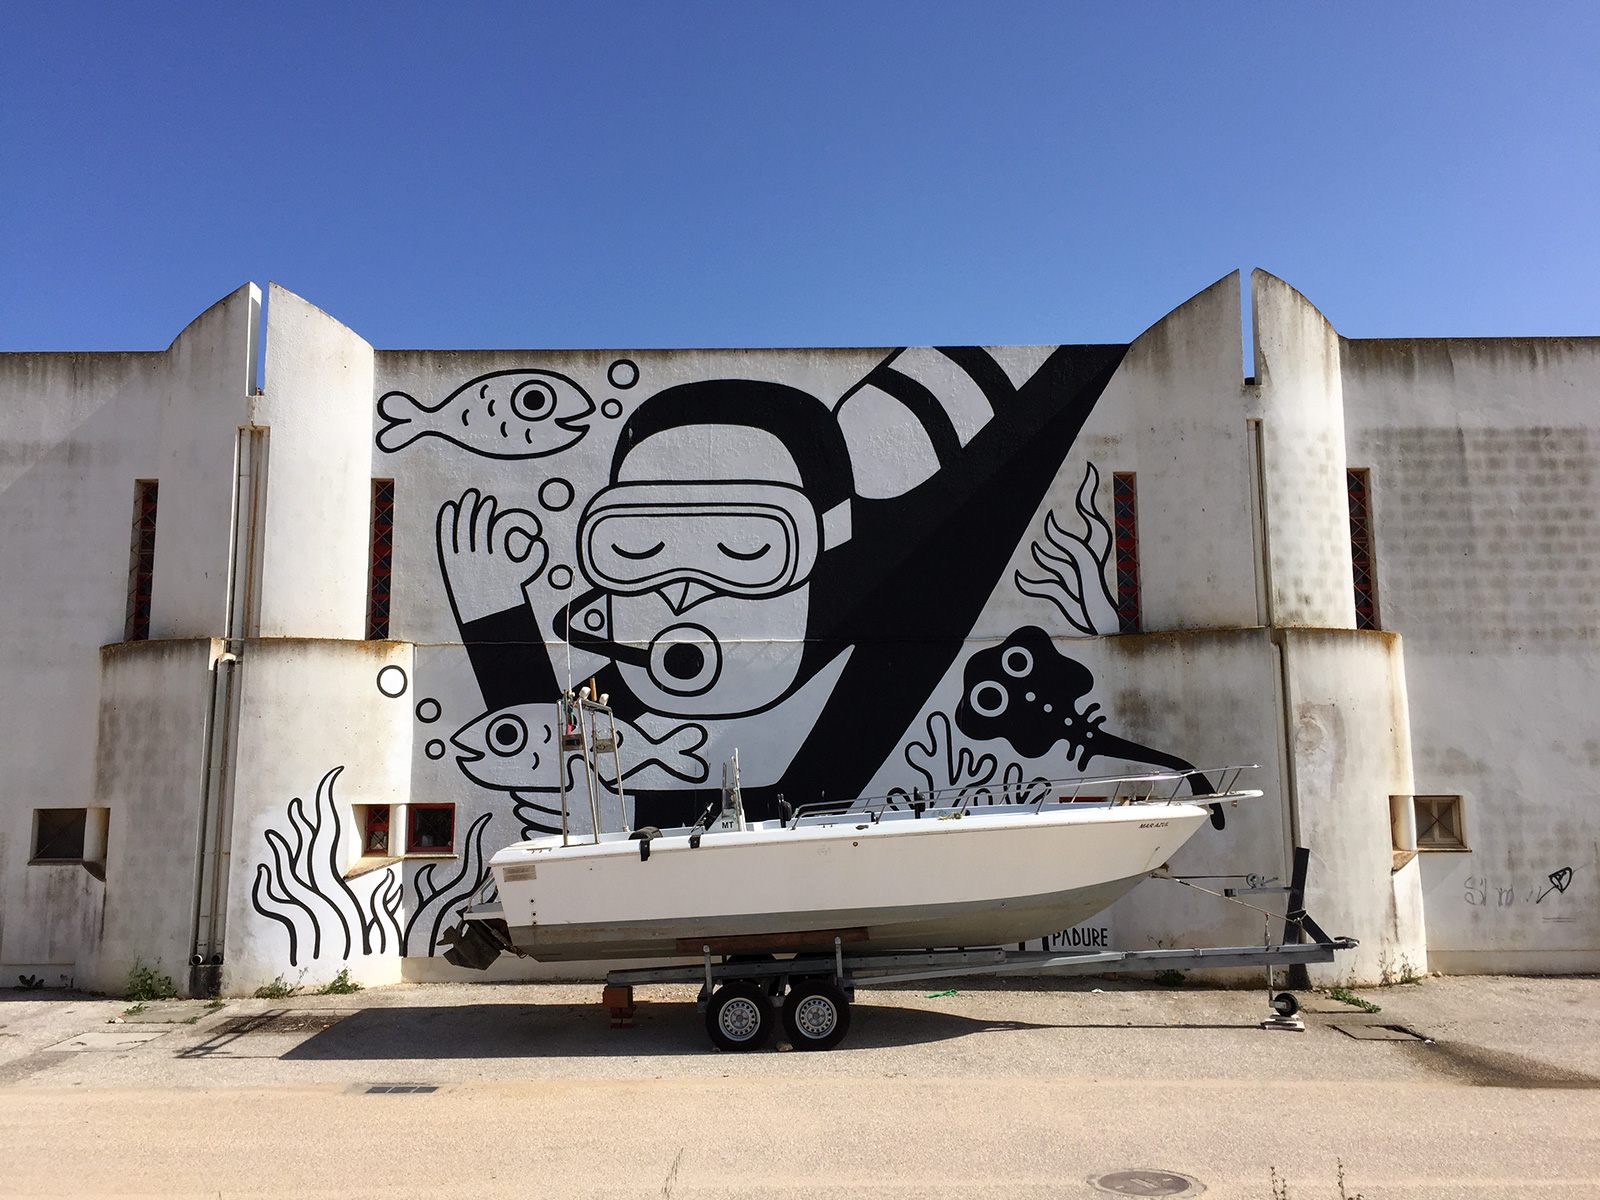 Street Art in Lagos, Portugal by Jets Like Taxis